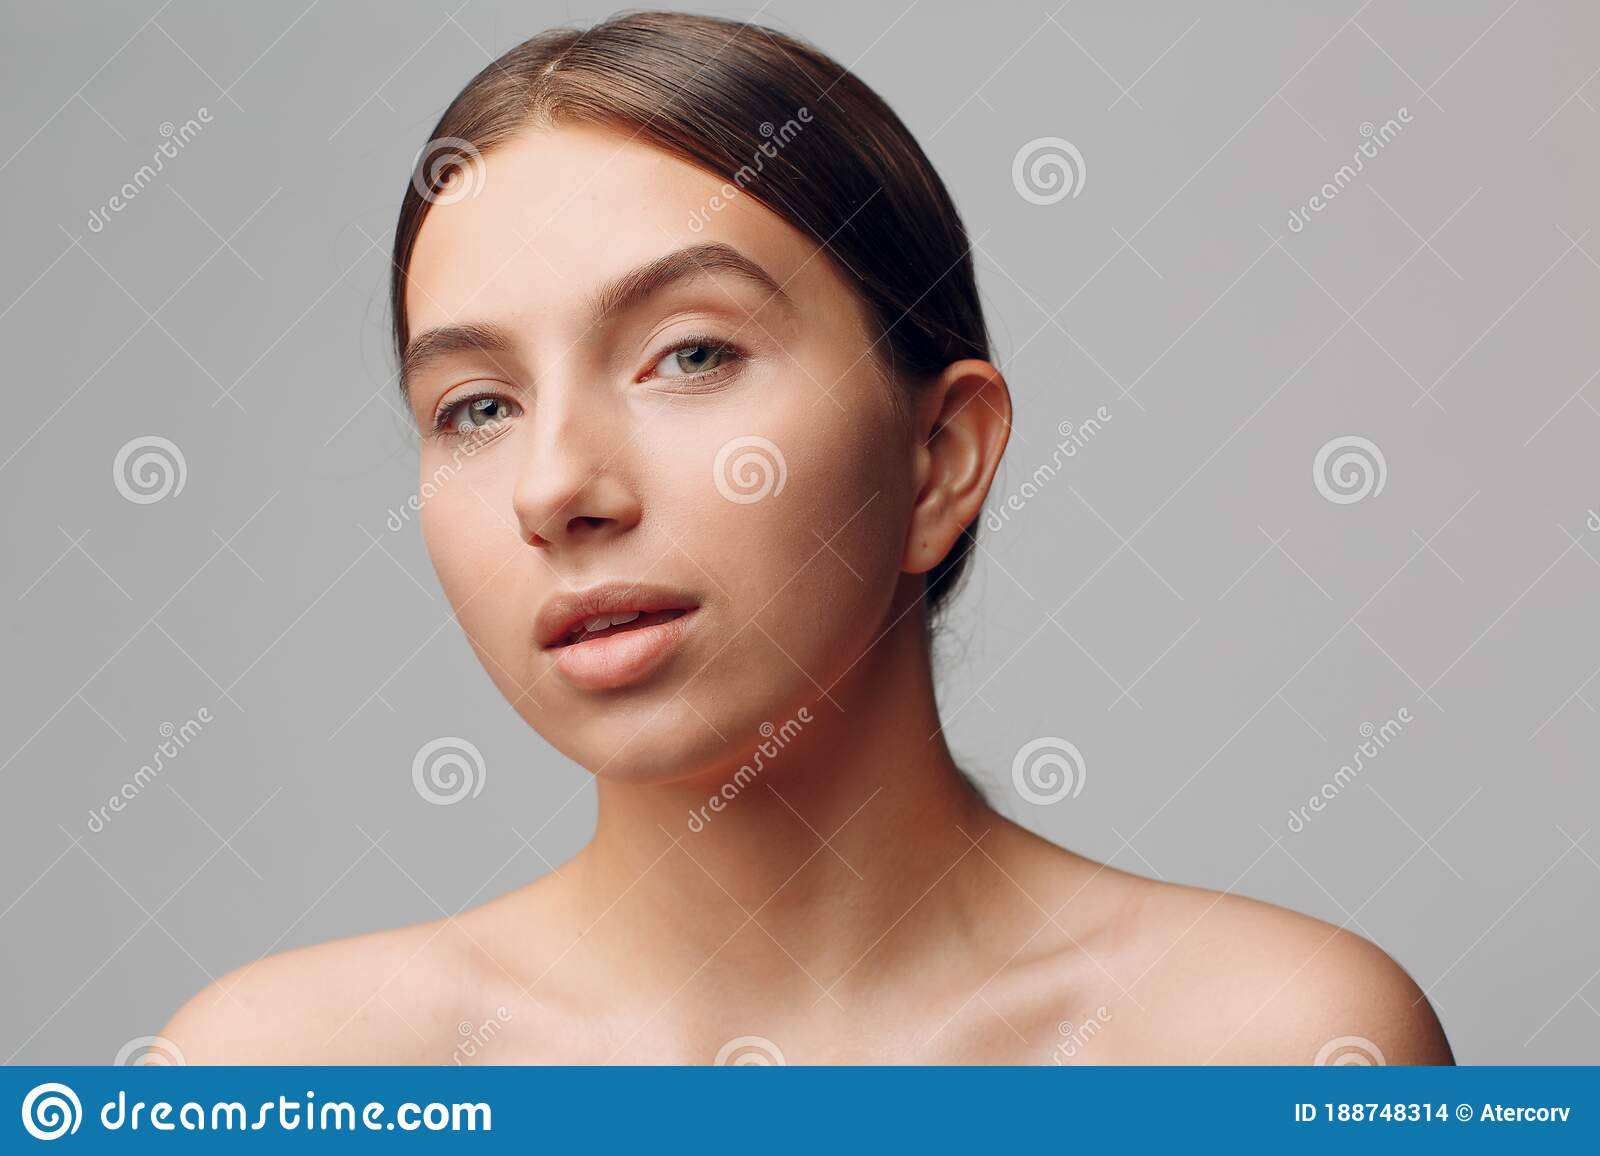 Face Of Beautiful Young Woman With Nude Makeup Visible